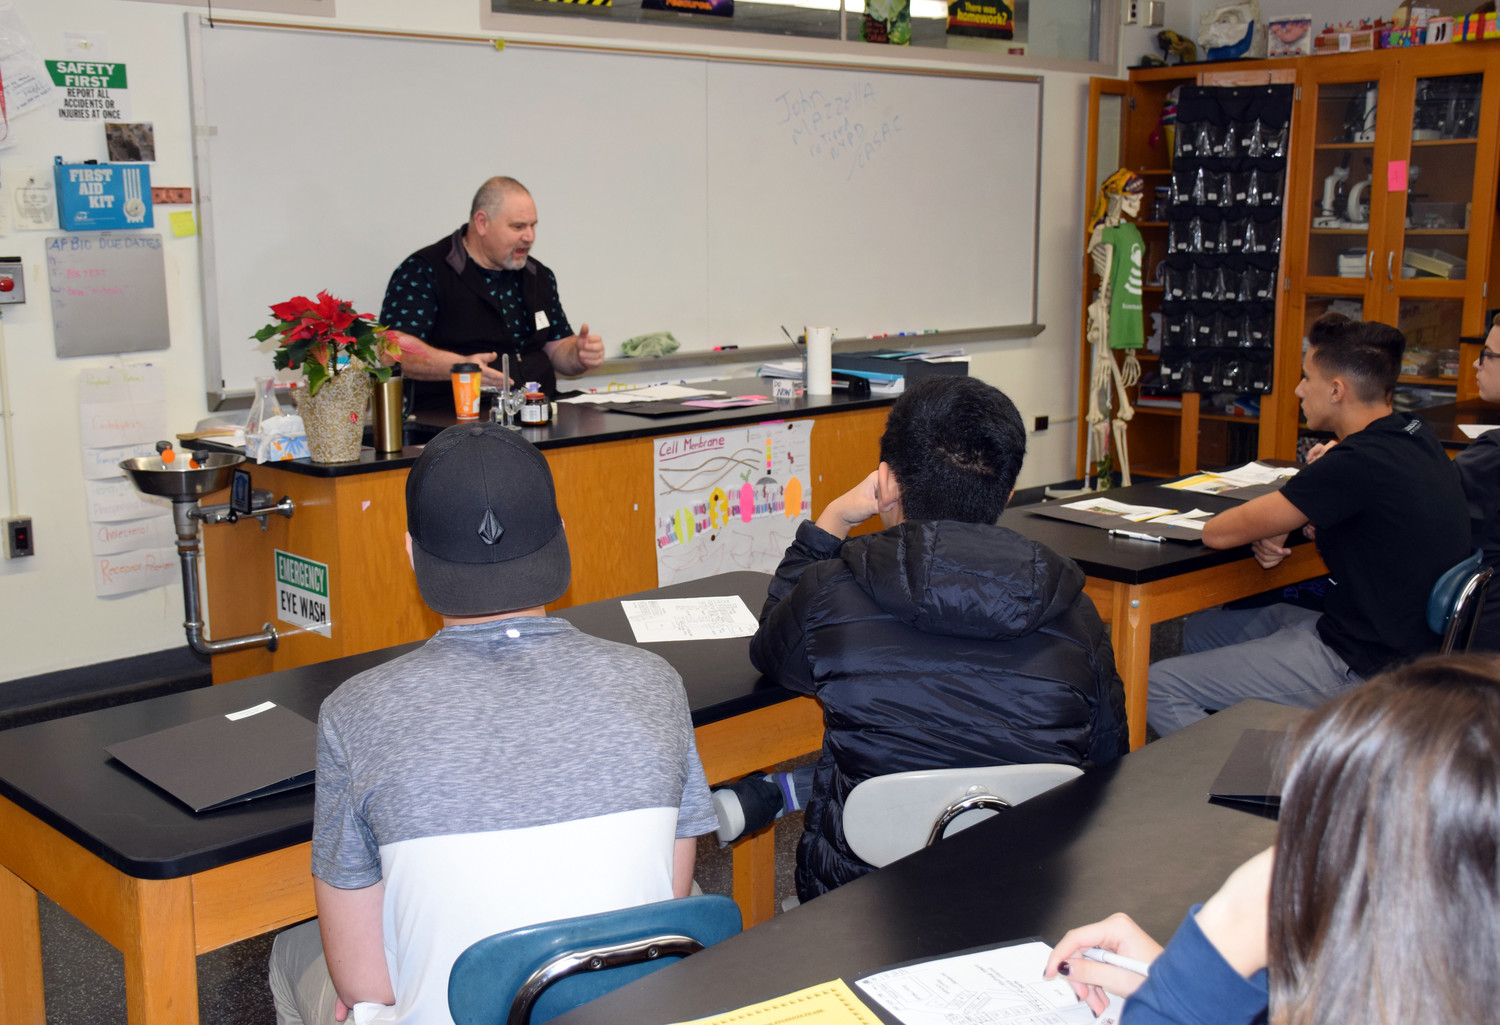 John Massella, retired police officer with the New York Police Department, educated students about law enforcement during W.T. Clarke High School's first Career Day.